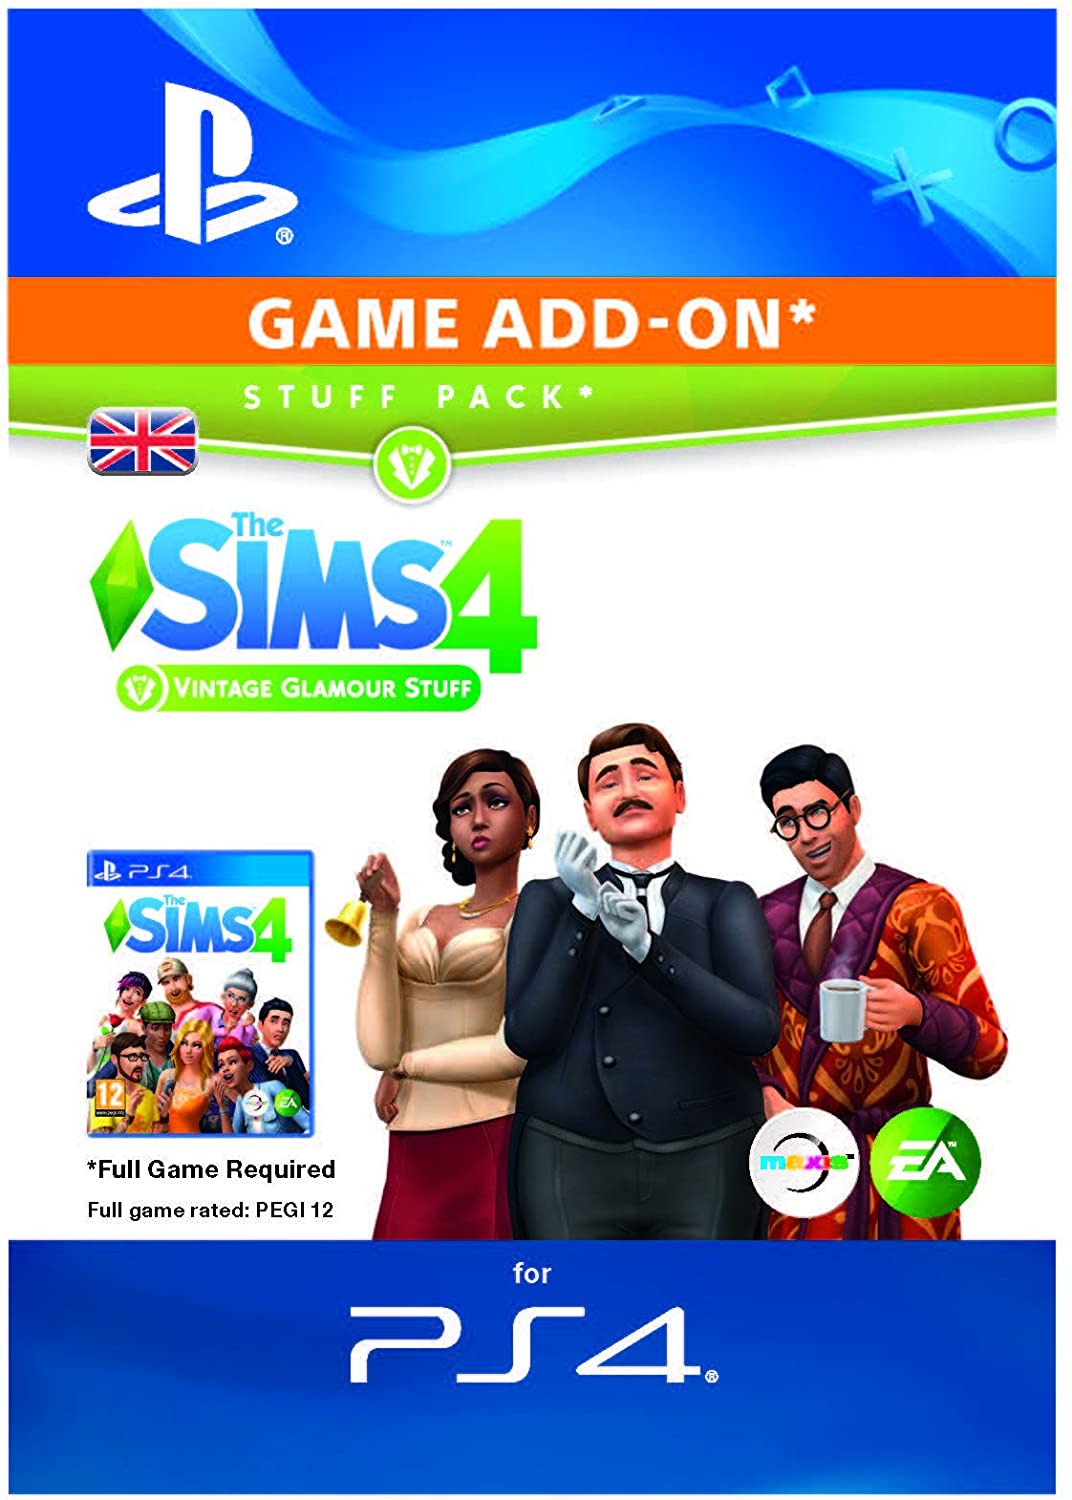 The Sims 4 - Vintage Glamour Stuff DLC | PS4 Download Code - UK Account